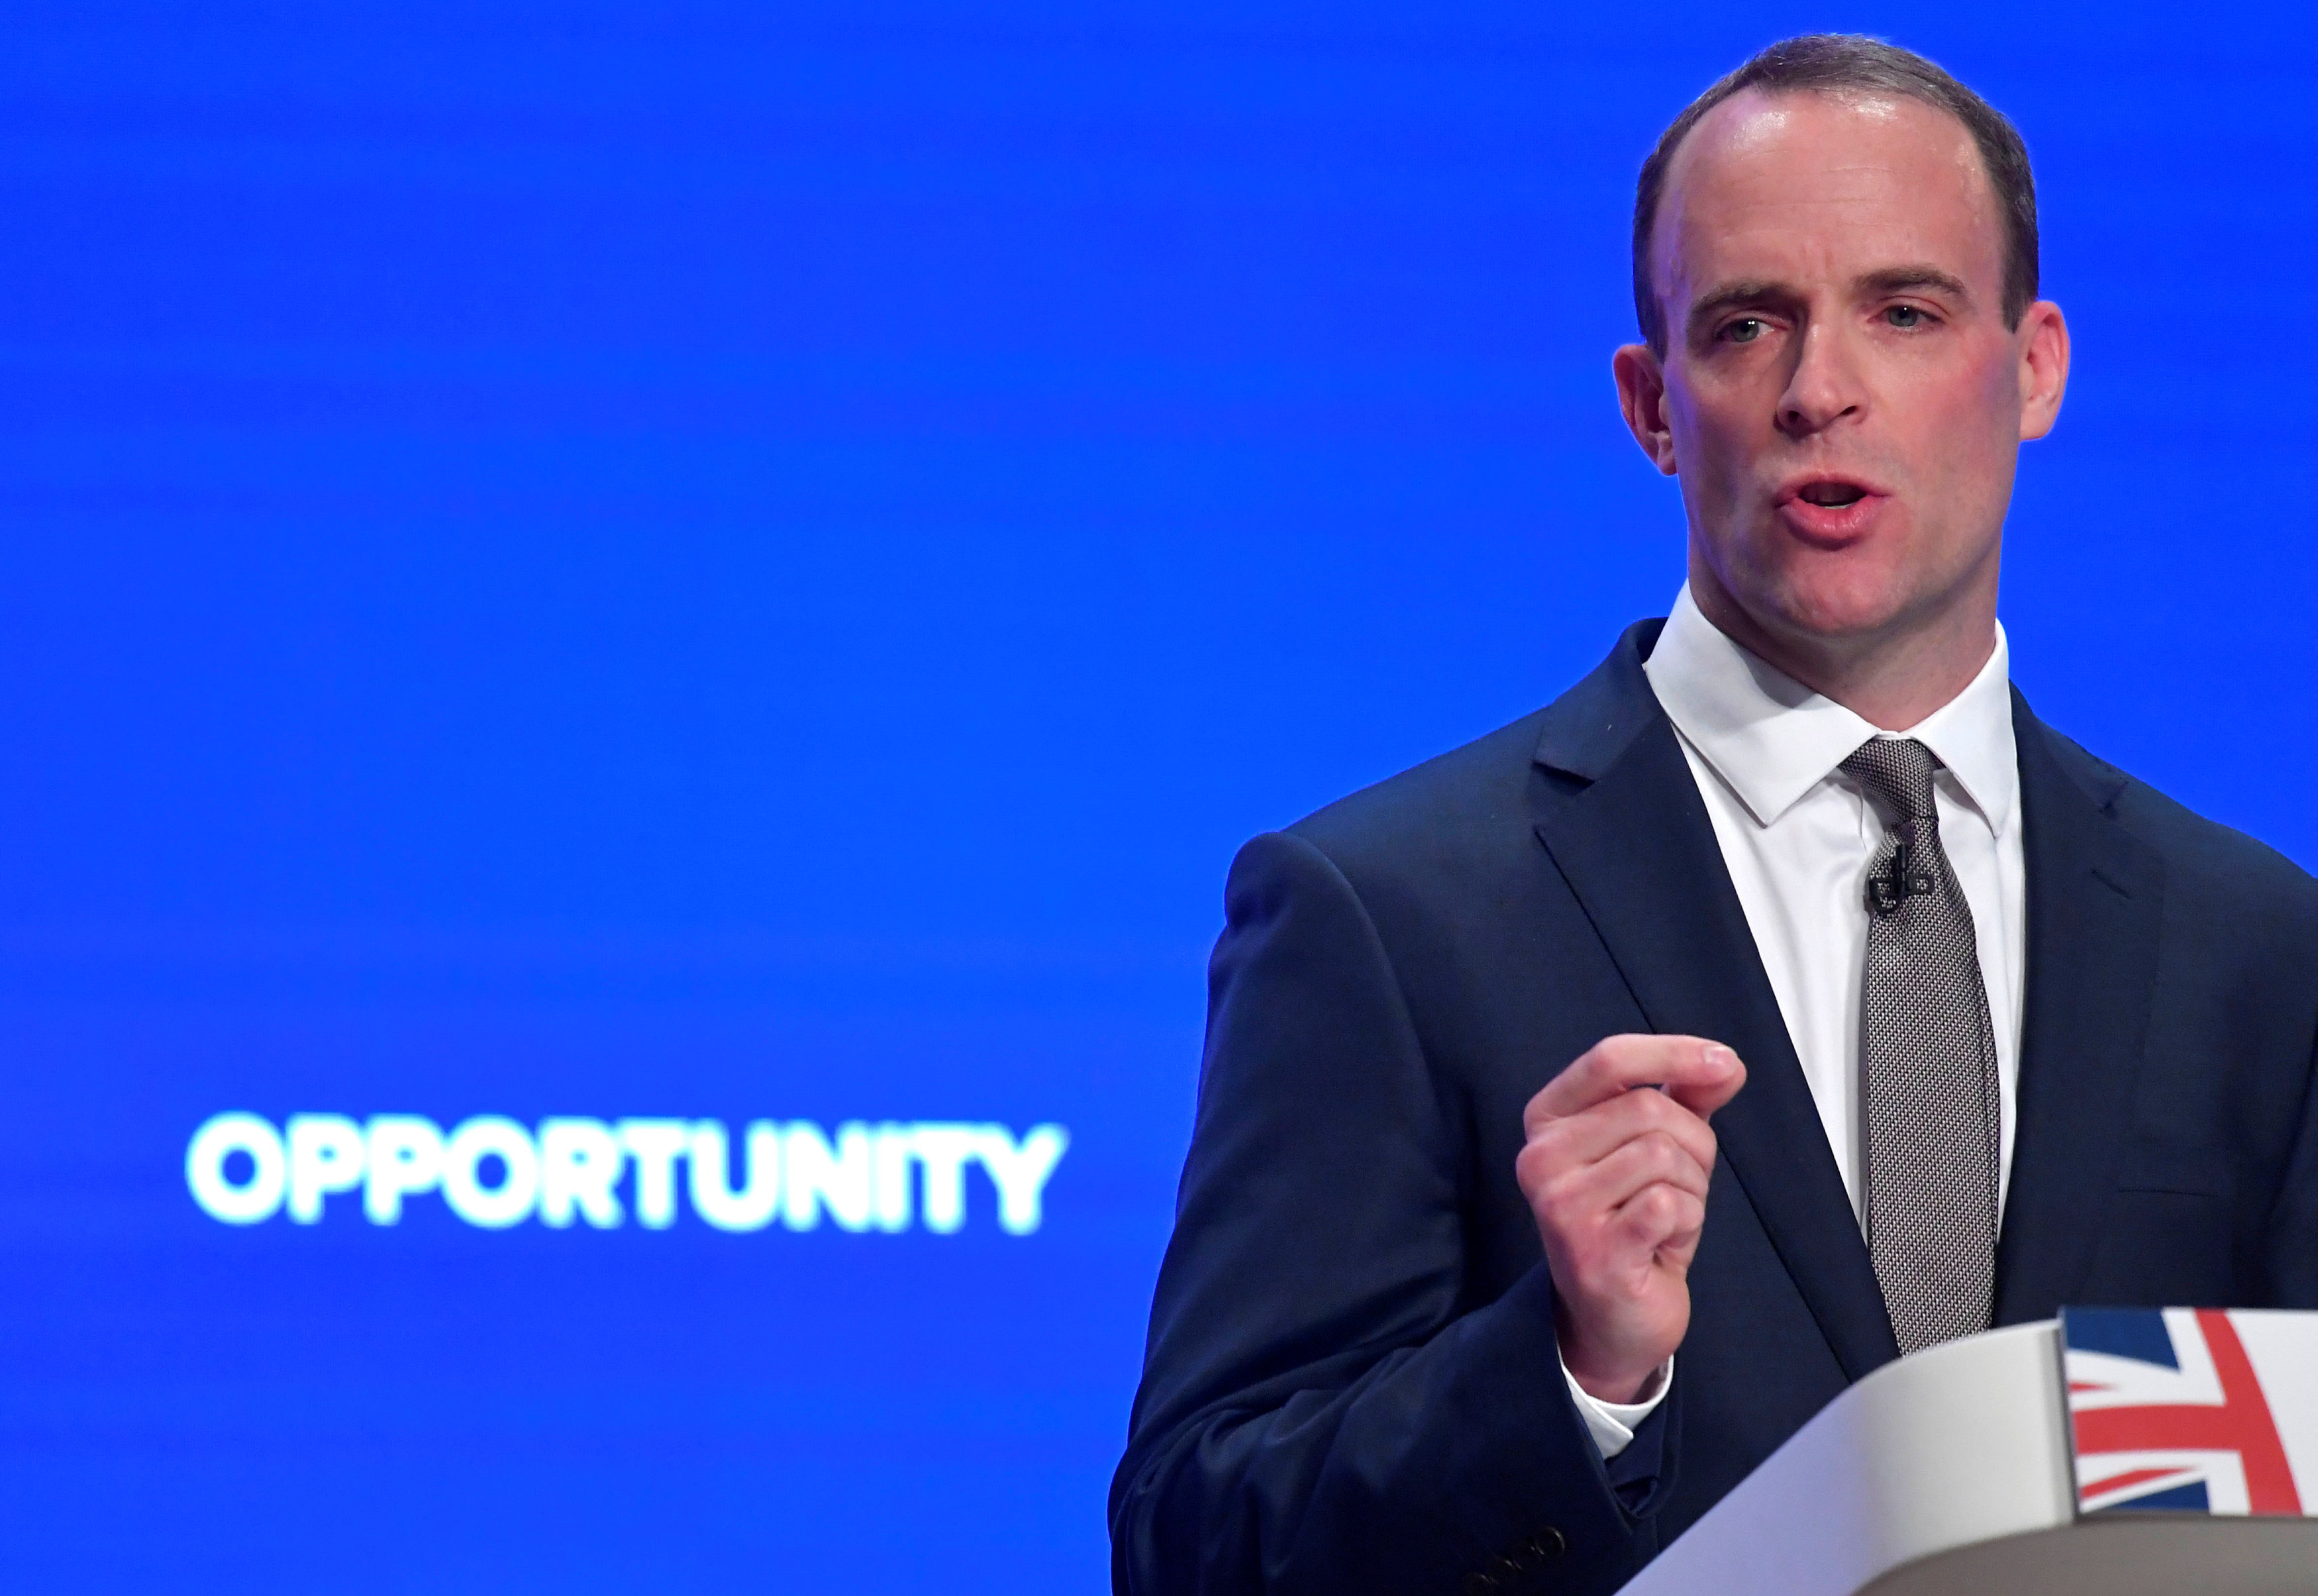 Britain's Secretary of State for Exiting the European Union Dominic Raab delivers his keynote address to the Conservative Party Conference in Birmingham, Britain, October 1, 2018.